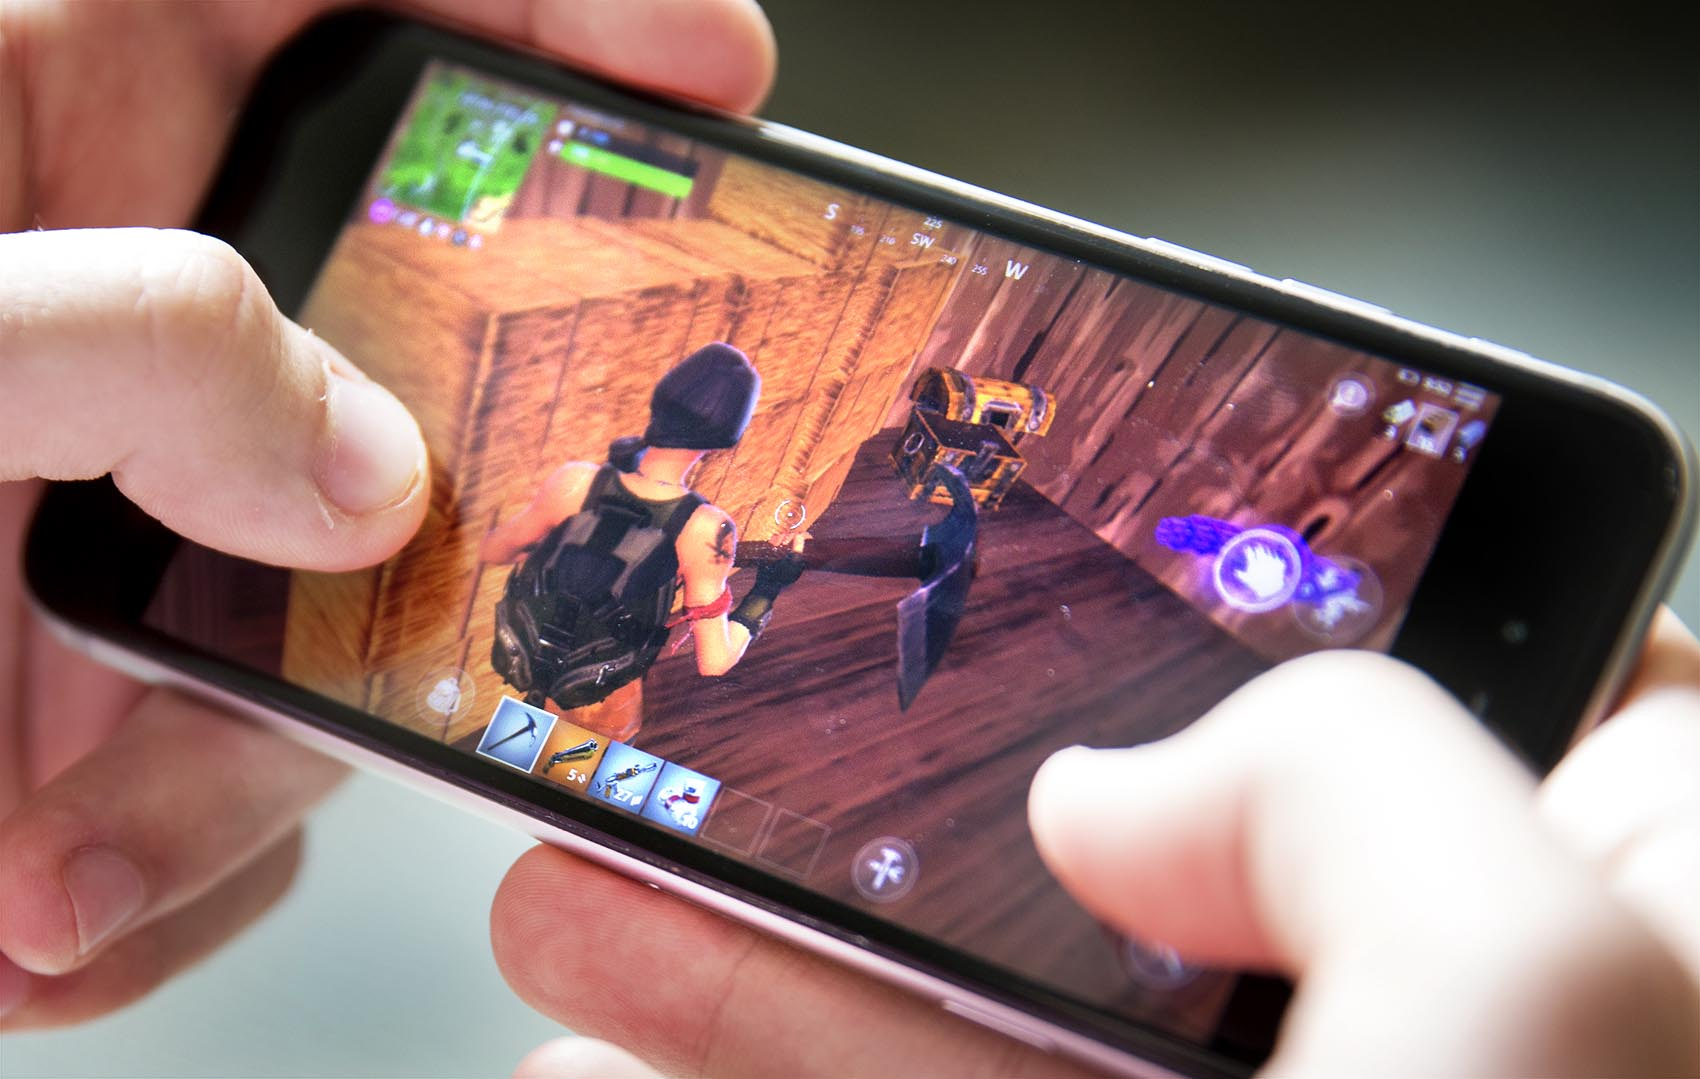 How 'Fortnite' Hooks Your Kid, And Why Experts Say You May Not Need To Worry | CommonHealth